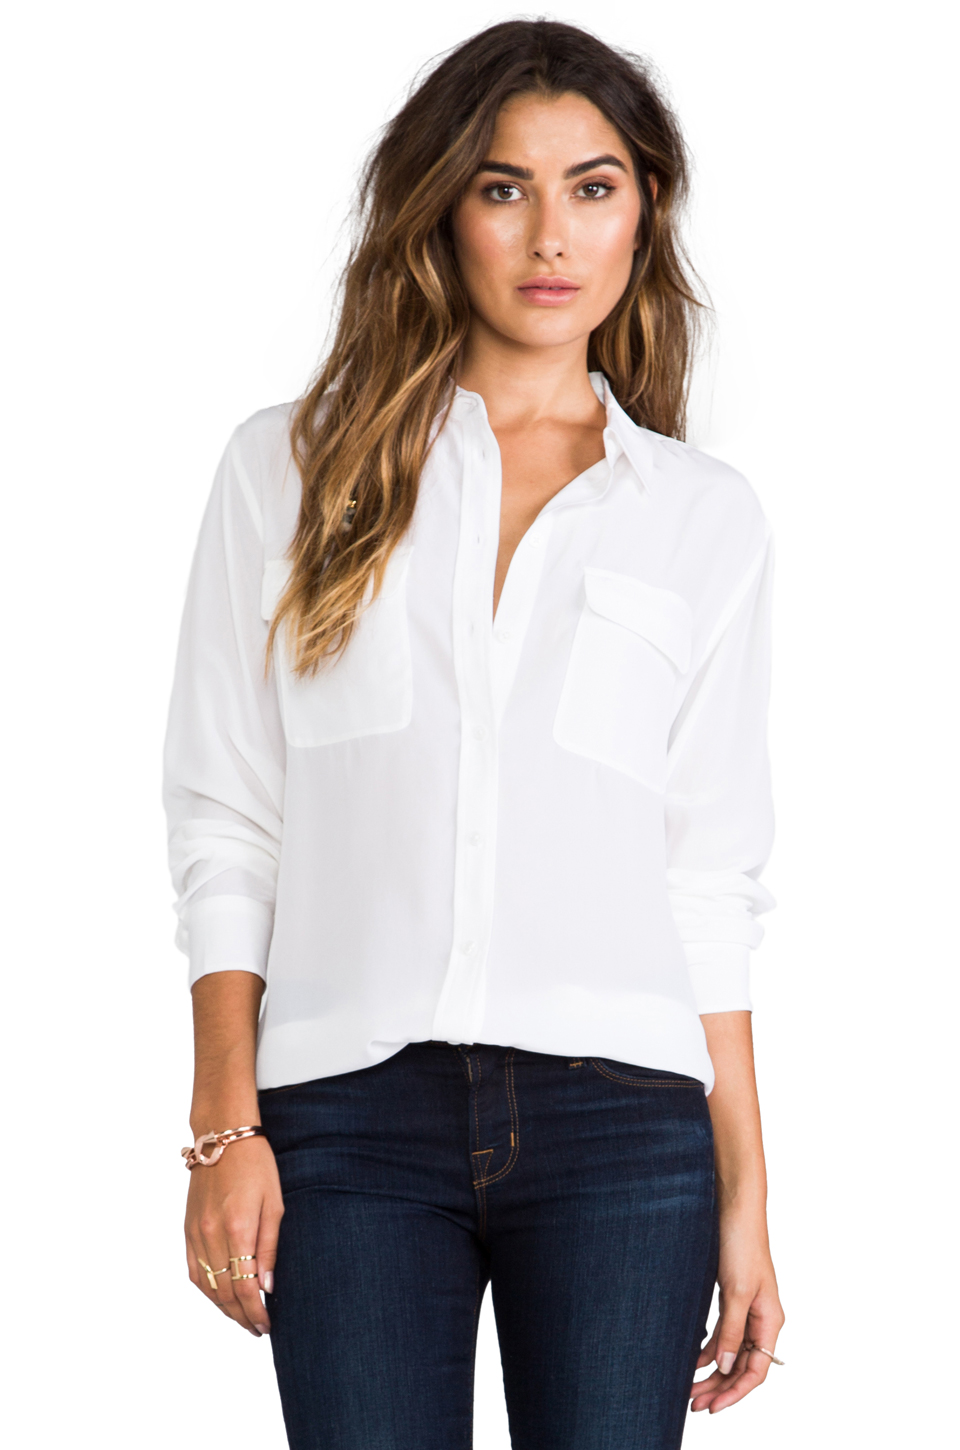 fe9a4bbaf5631 Equipment Signature Blouse in Bright White